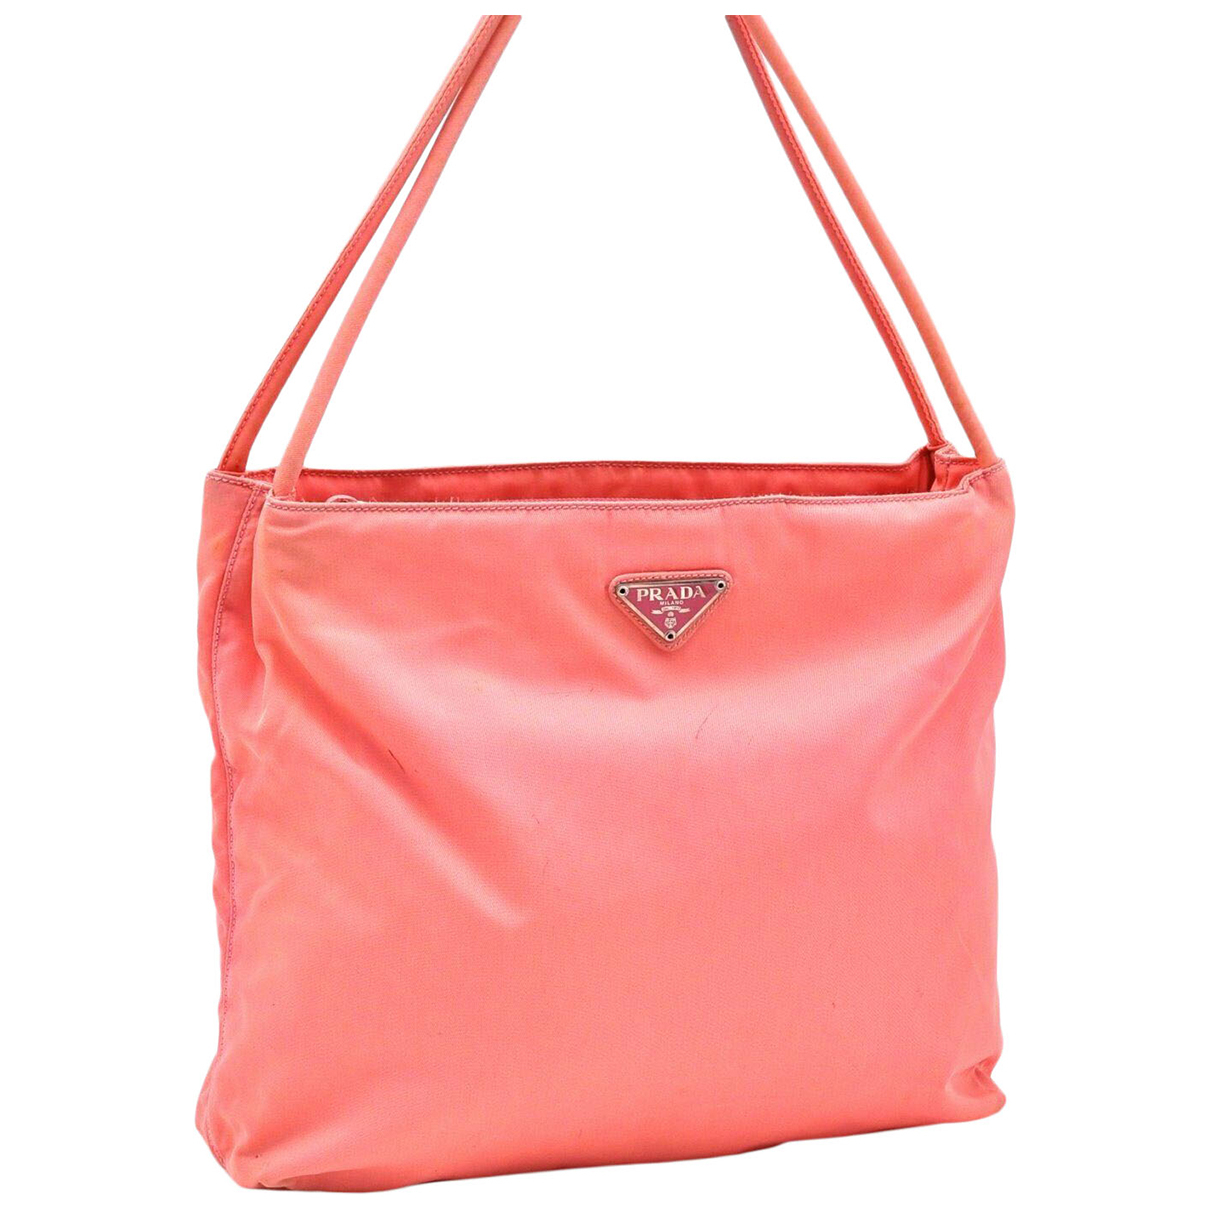 Prada N Pink handbag for Women N